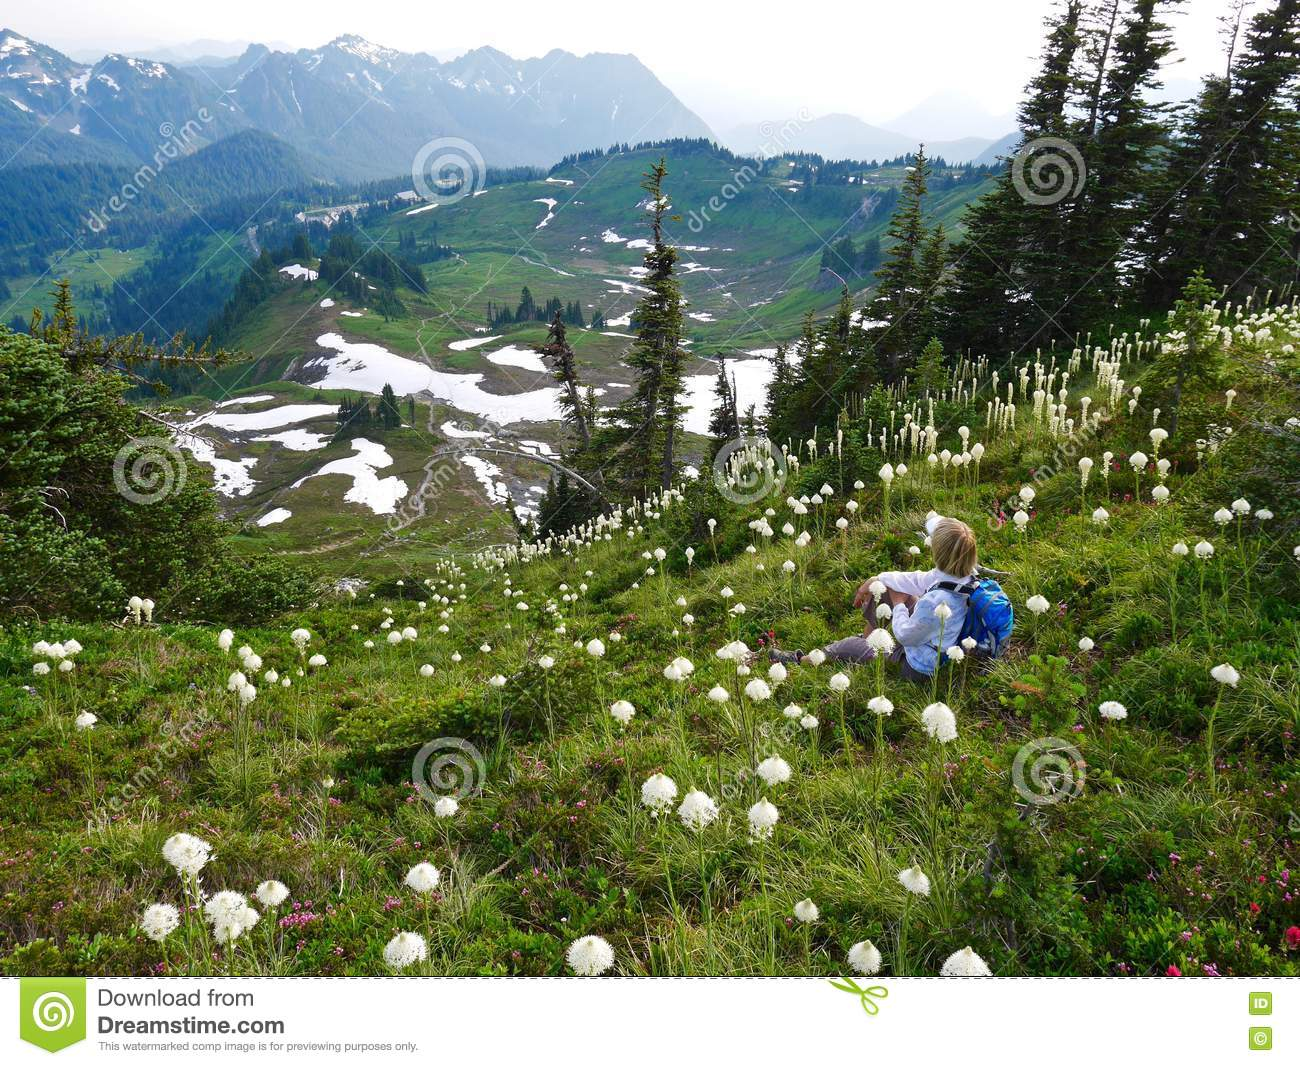 Woman tourist sitting among wild flowers with mountain view.